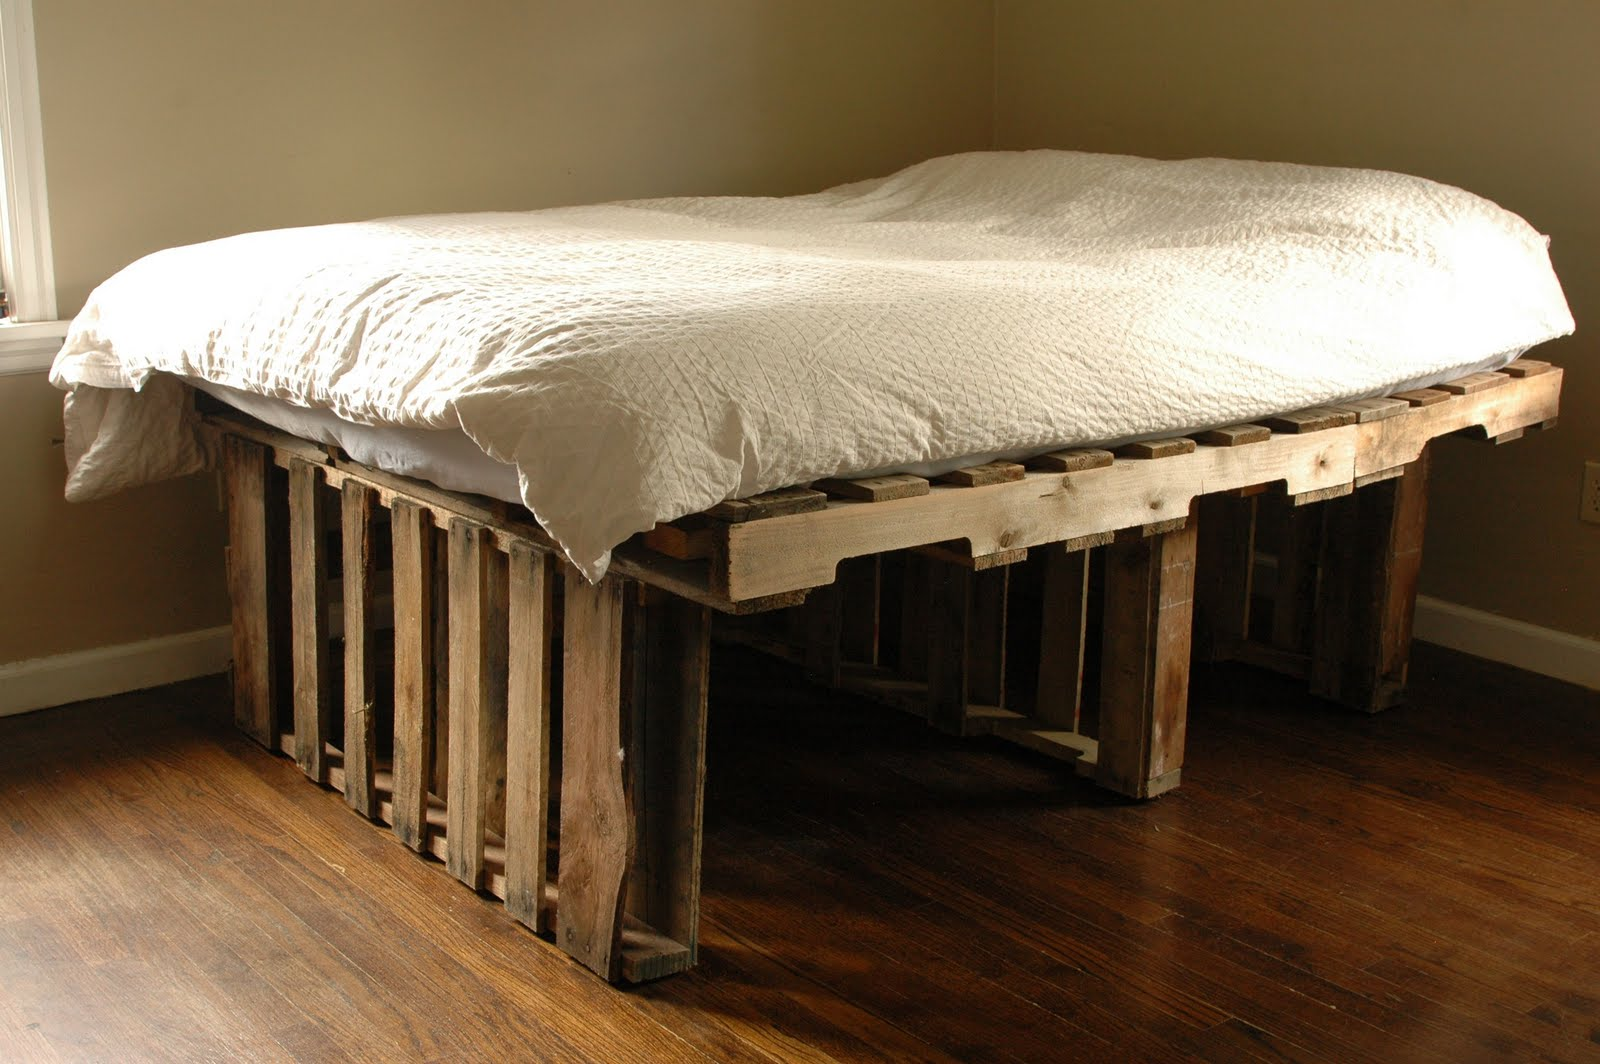 ... Platform Bed With Pallets | Search Results | DIY Woodworking Projects